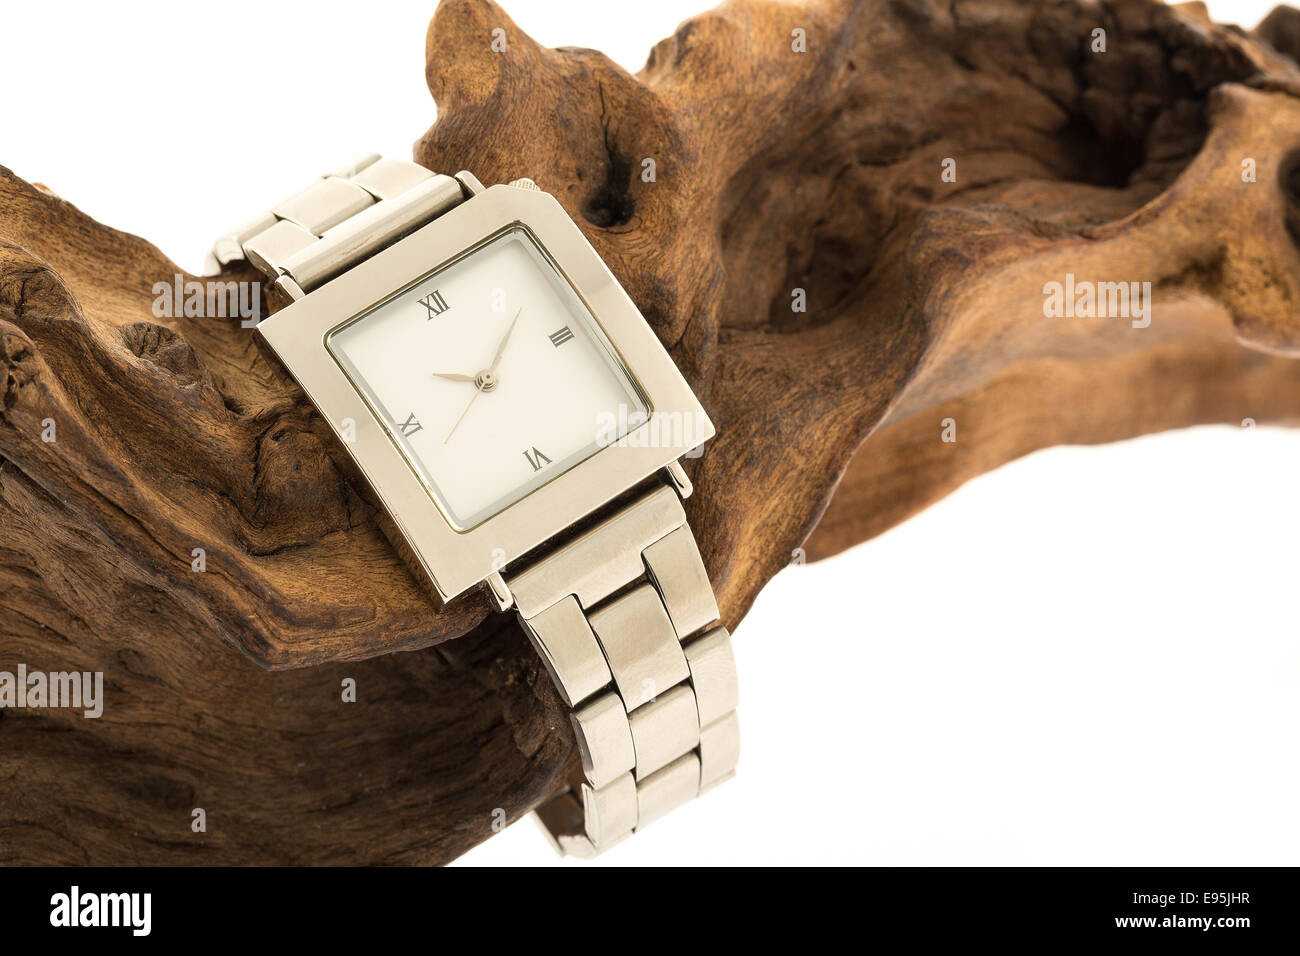 A mans wrist watch on a piece of fossilised wood - studio shot with a white background - Stock Image